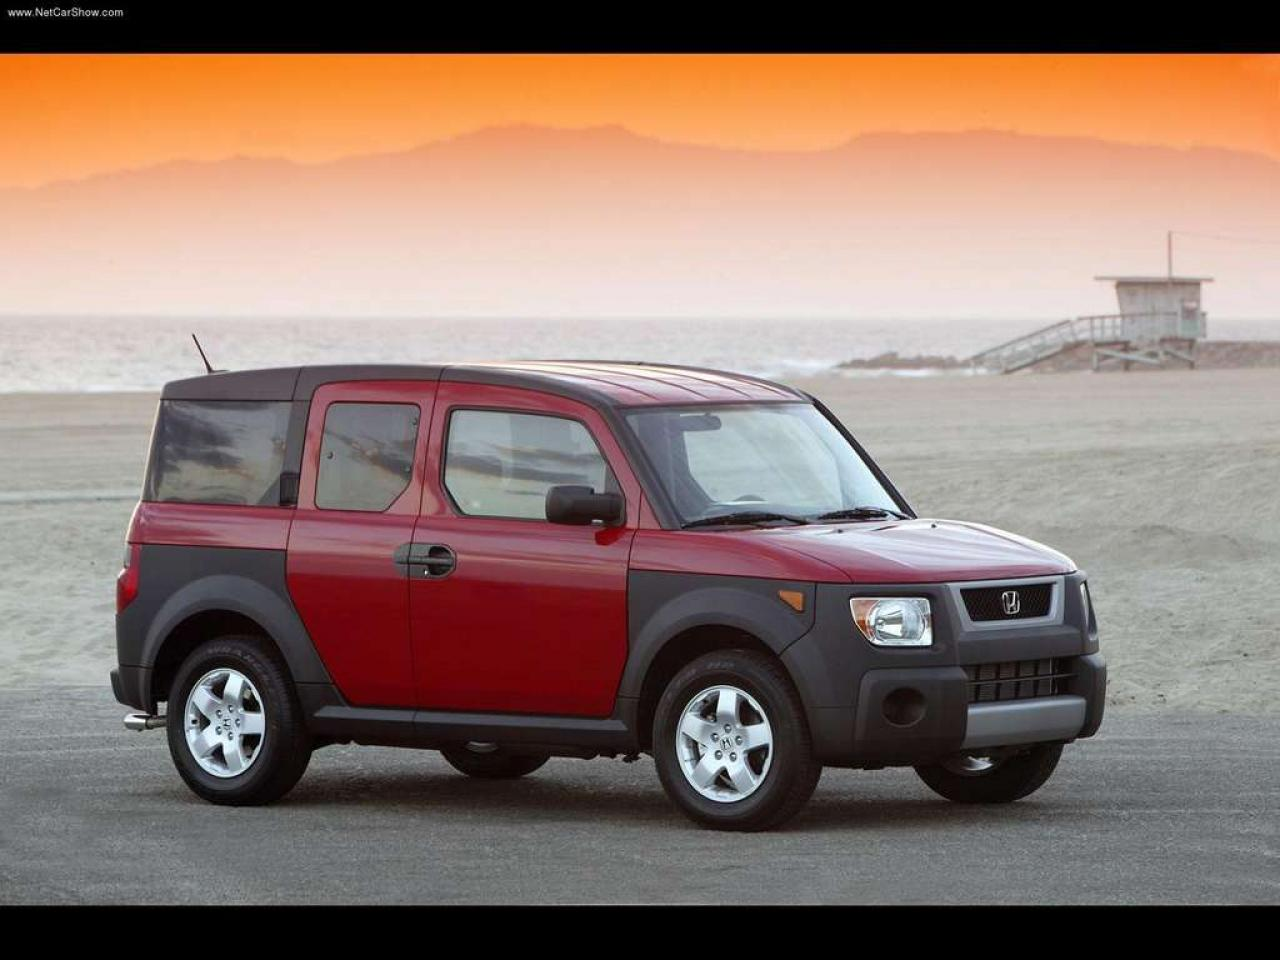 2005 honda element information and photos zombiedrive. Black Bedroom Furniture Sets. Home Design Ideas